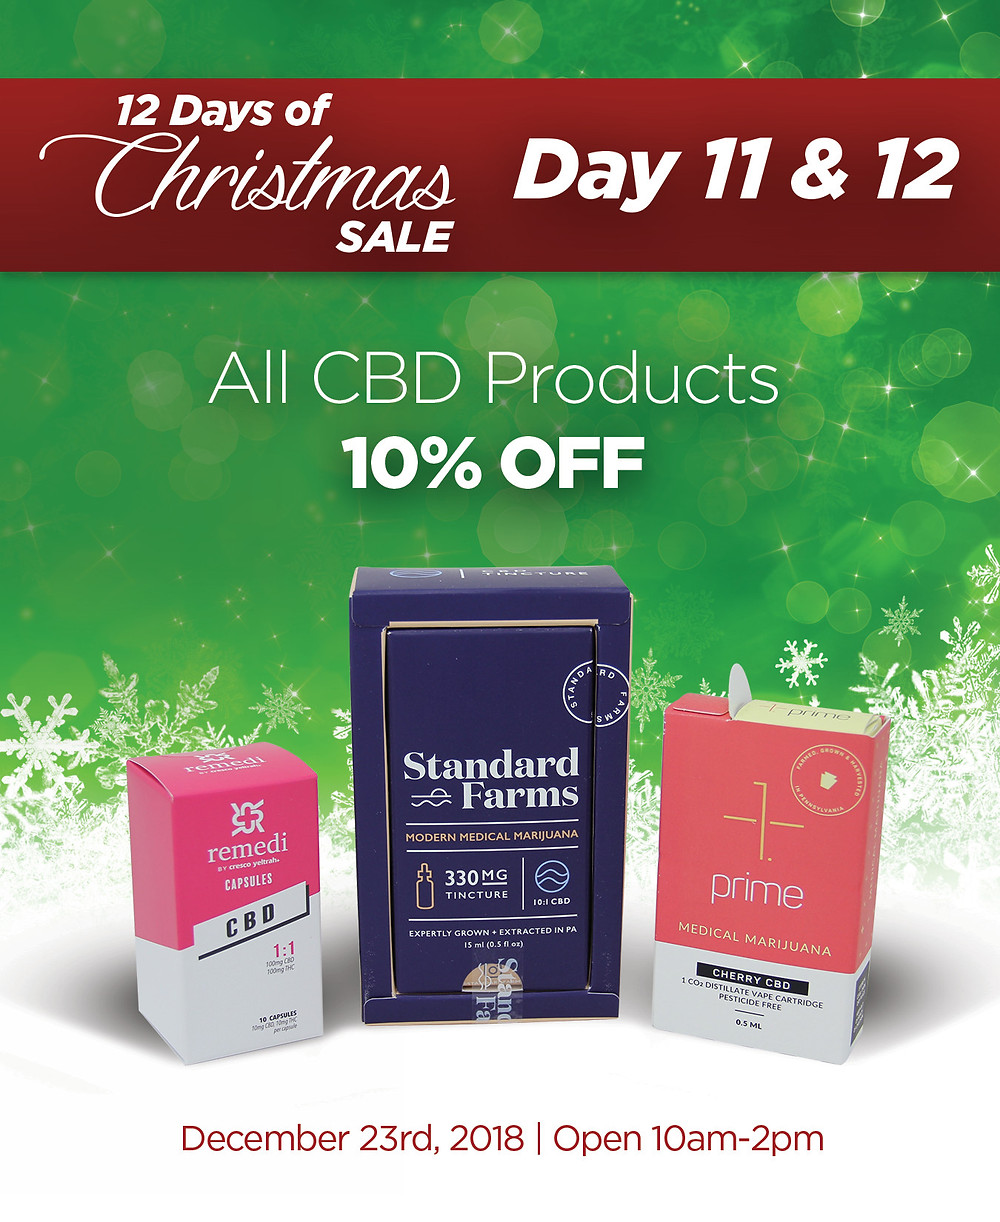 All CBD product are 10% OFF